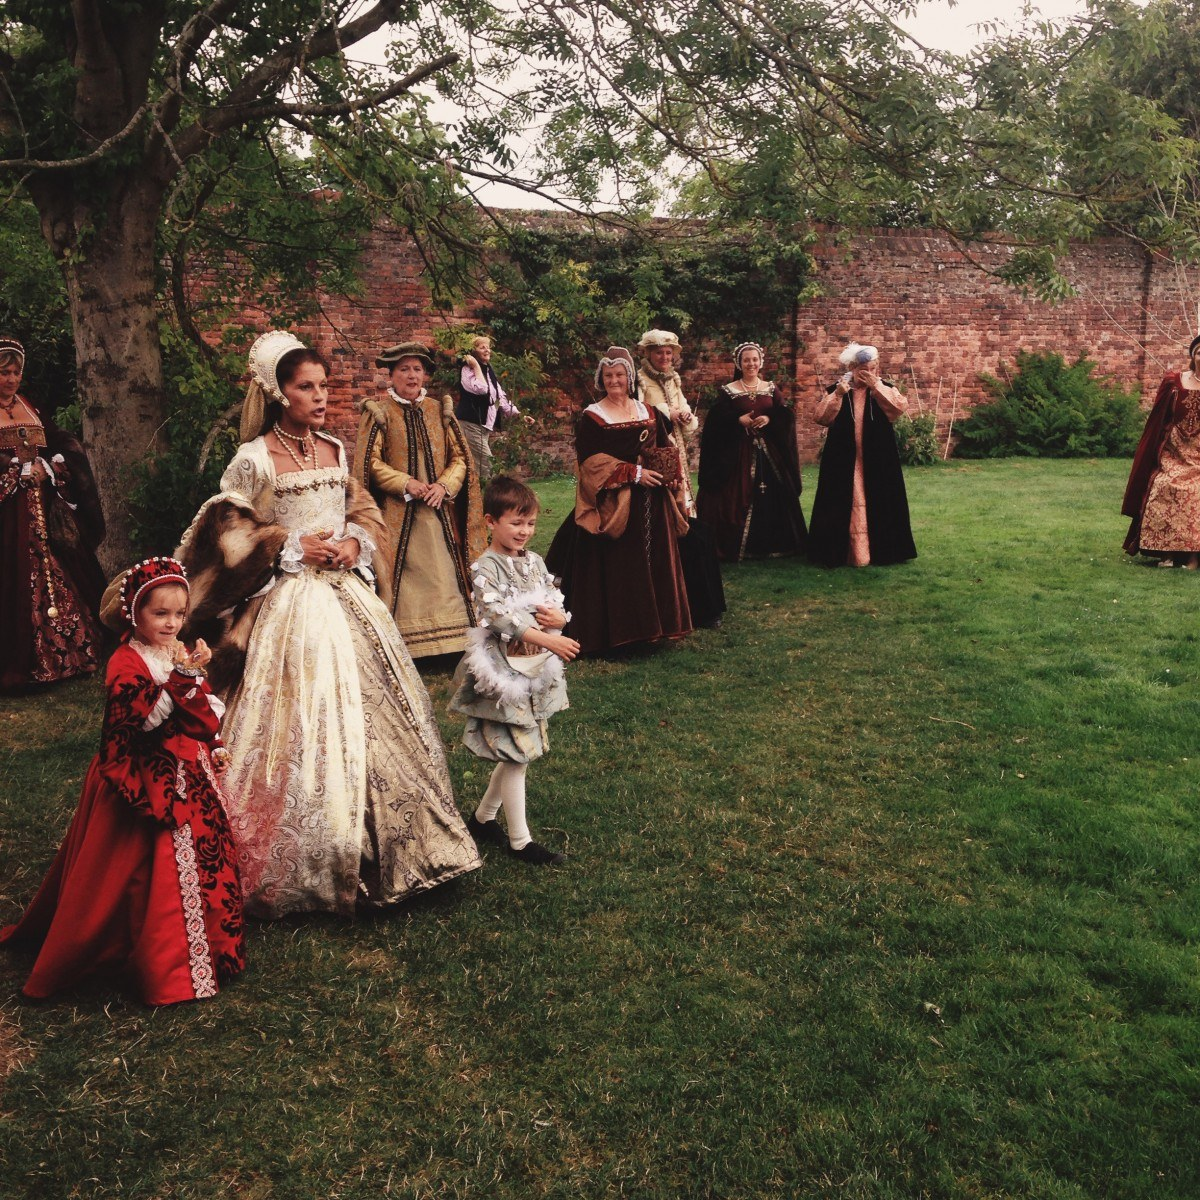 anne-boleyn-berkeley-castle-honeymoon.jpg